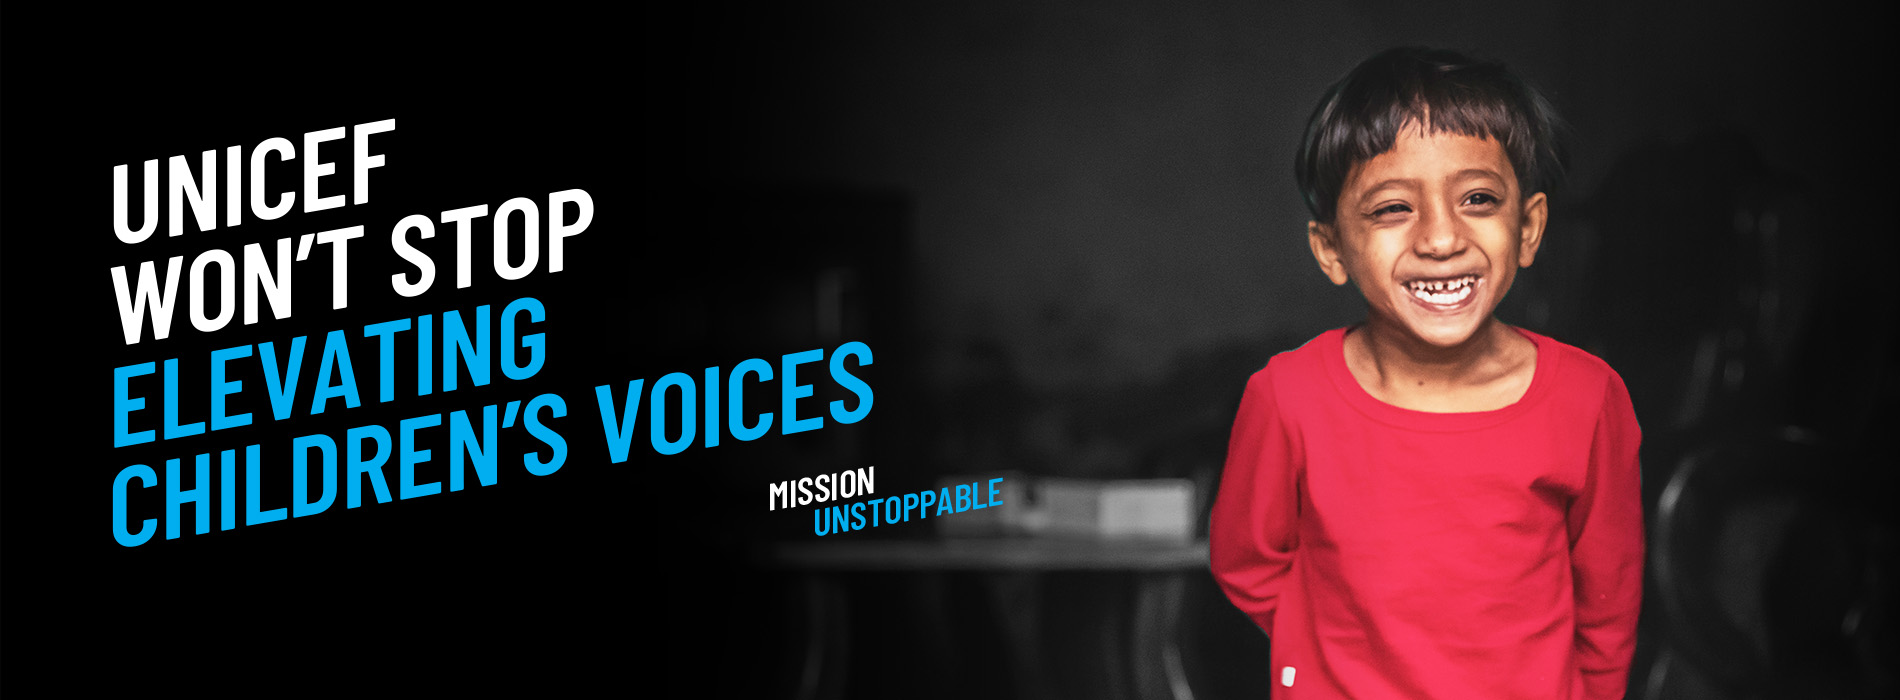 UNICEF won't stop elevating children's voices. Mission Unstoppable